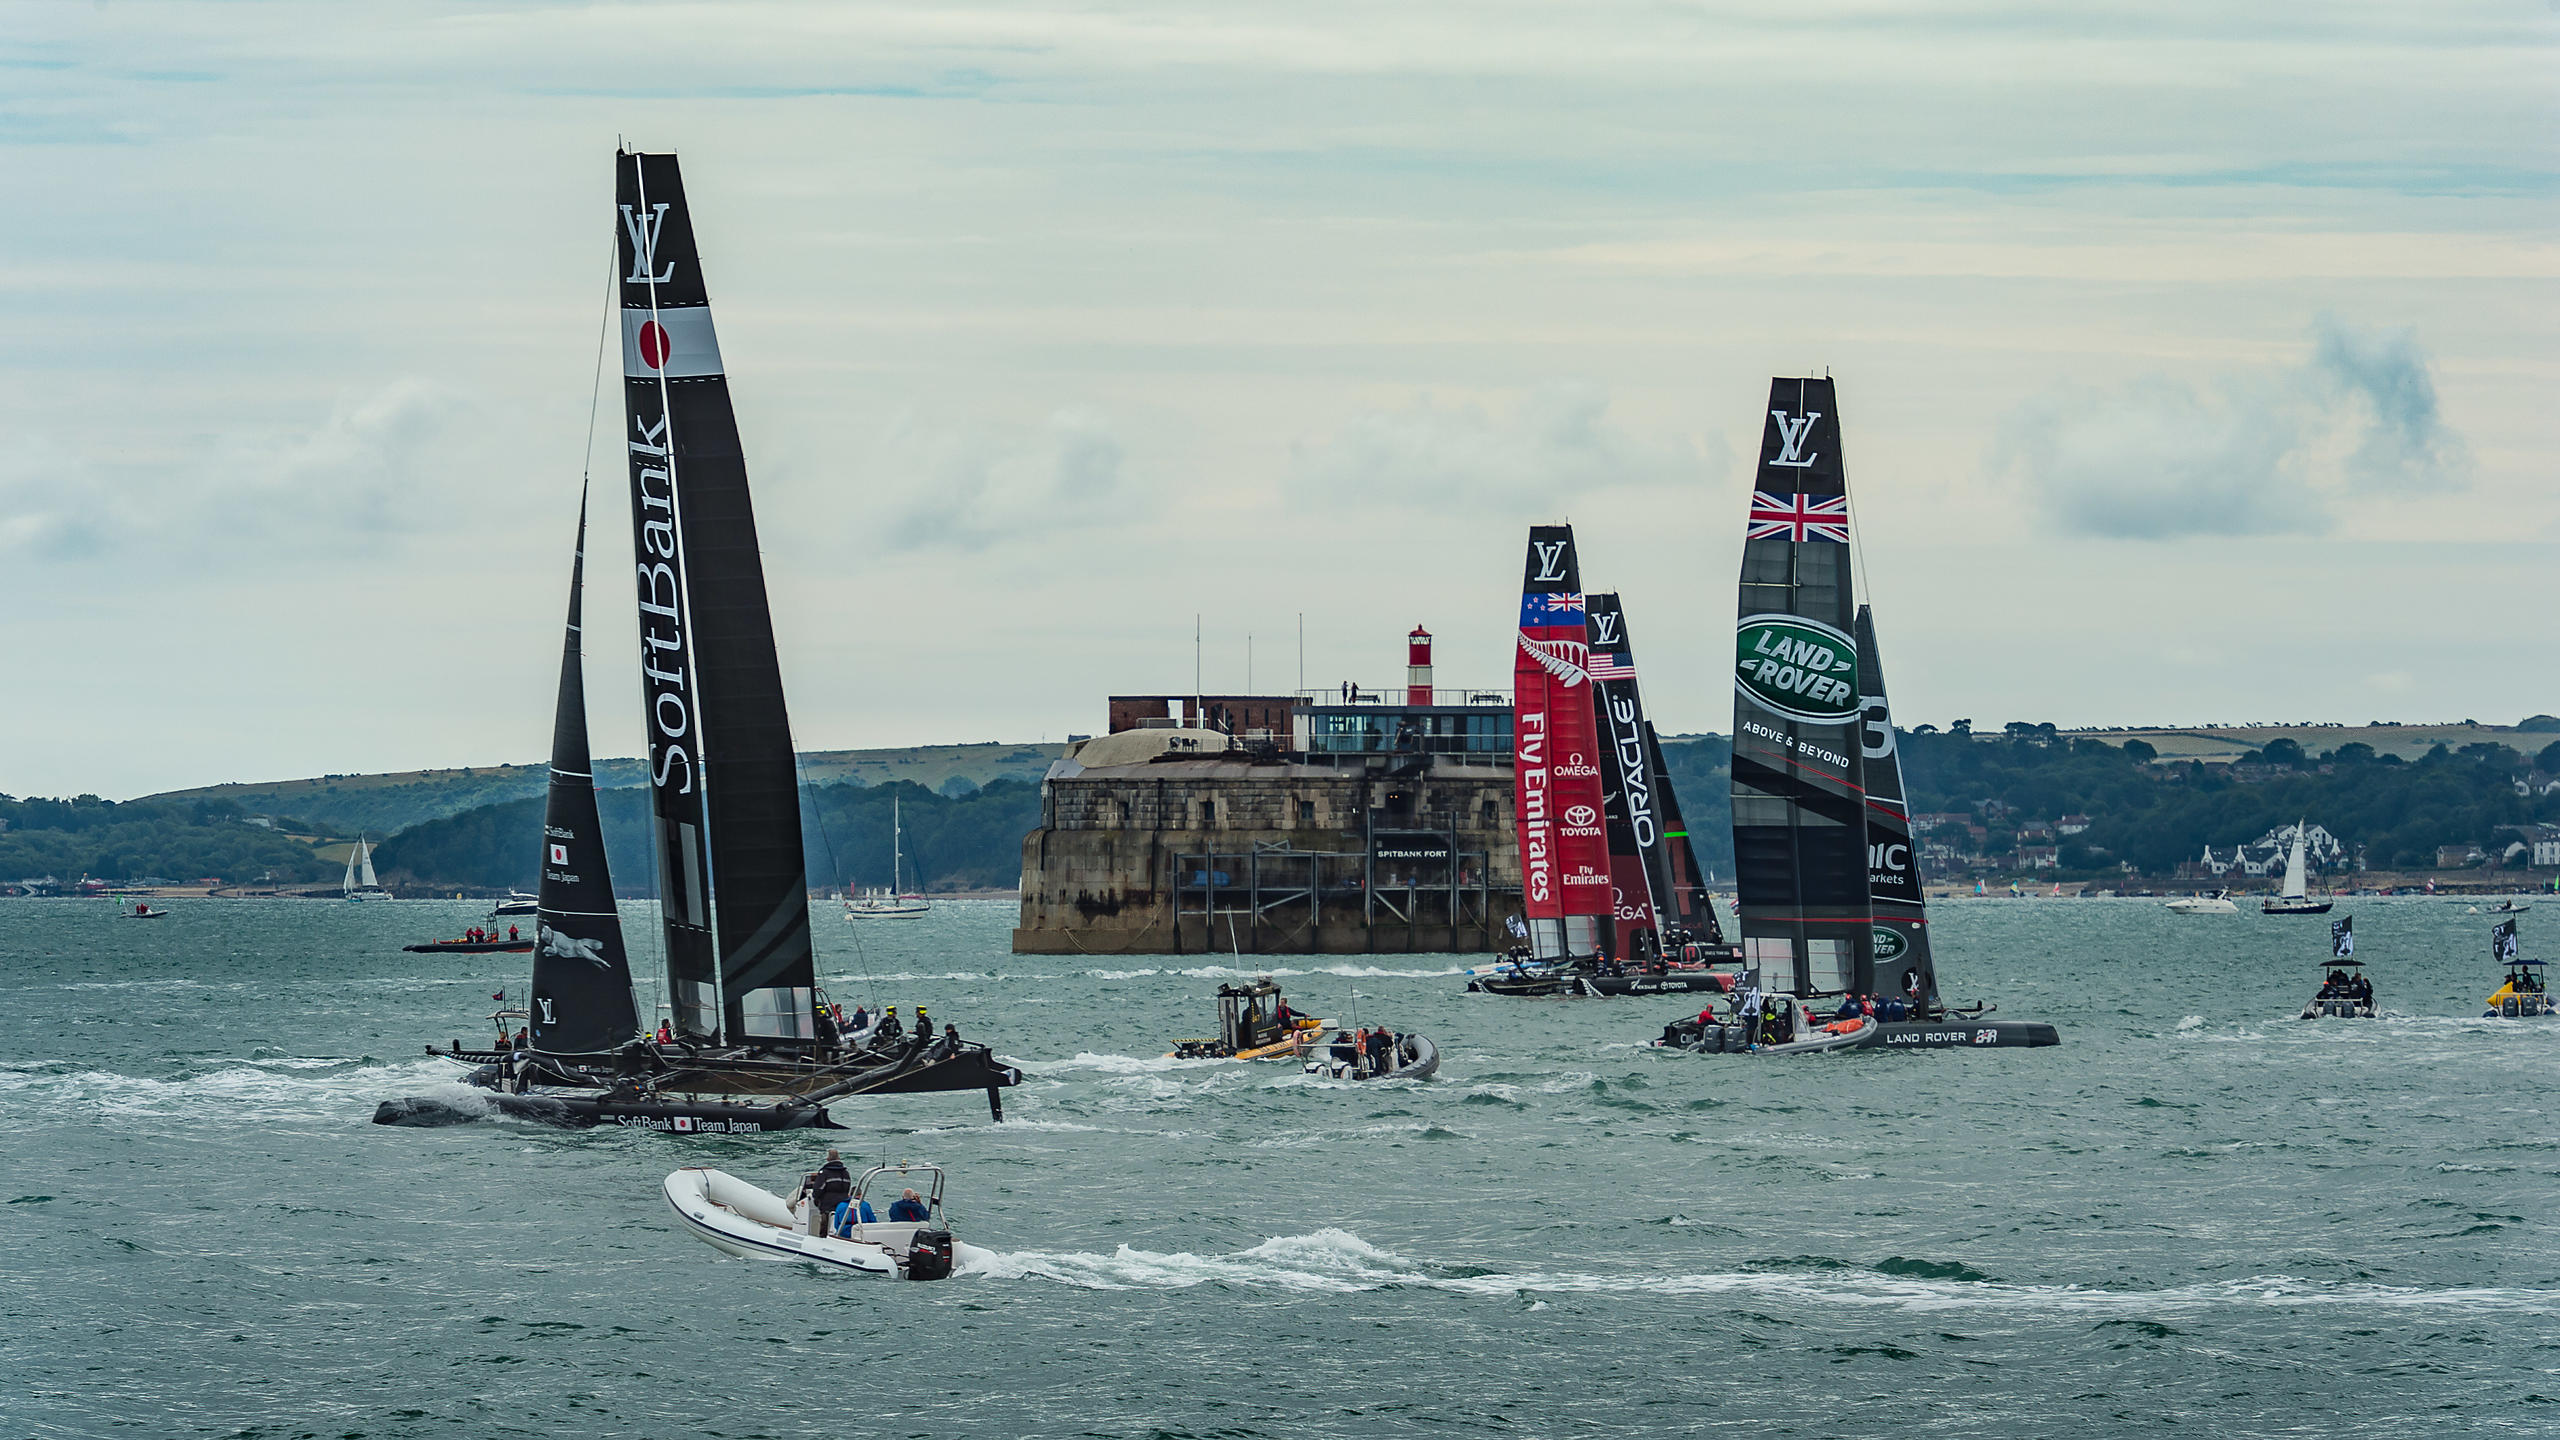 All Six Teams Racing on Day 1 of Americ's Cup Portsmouth 2015